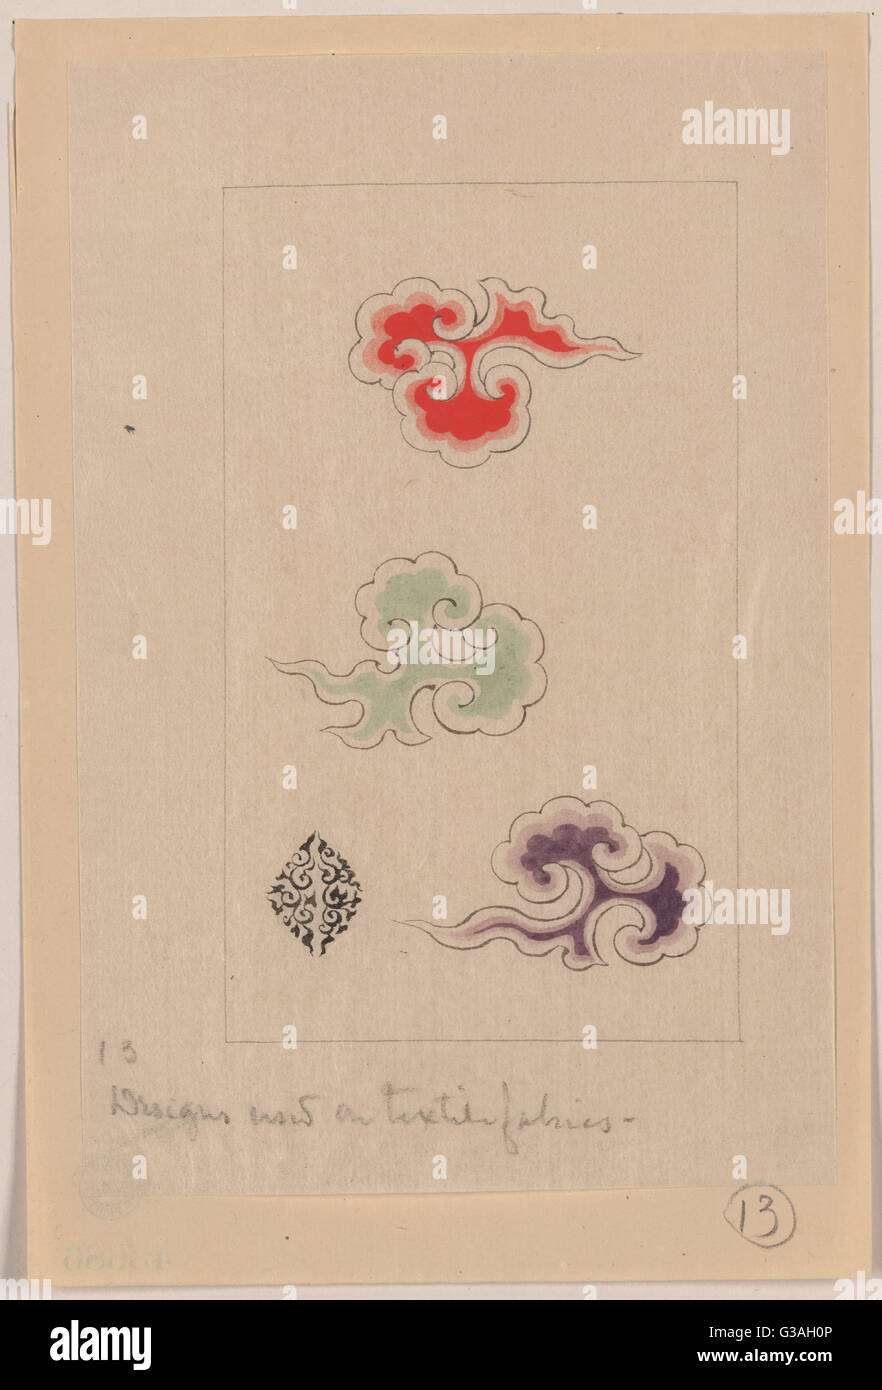 Designs now on textile fabrics. Date 1878?. - Stock Image